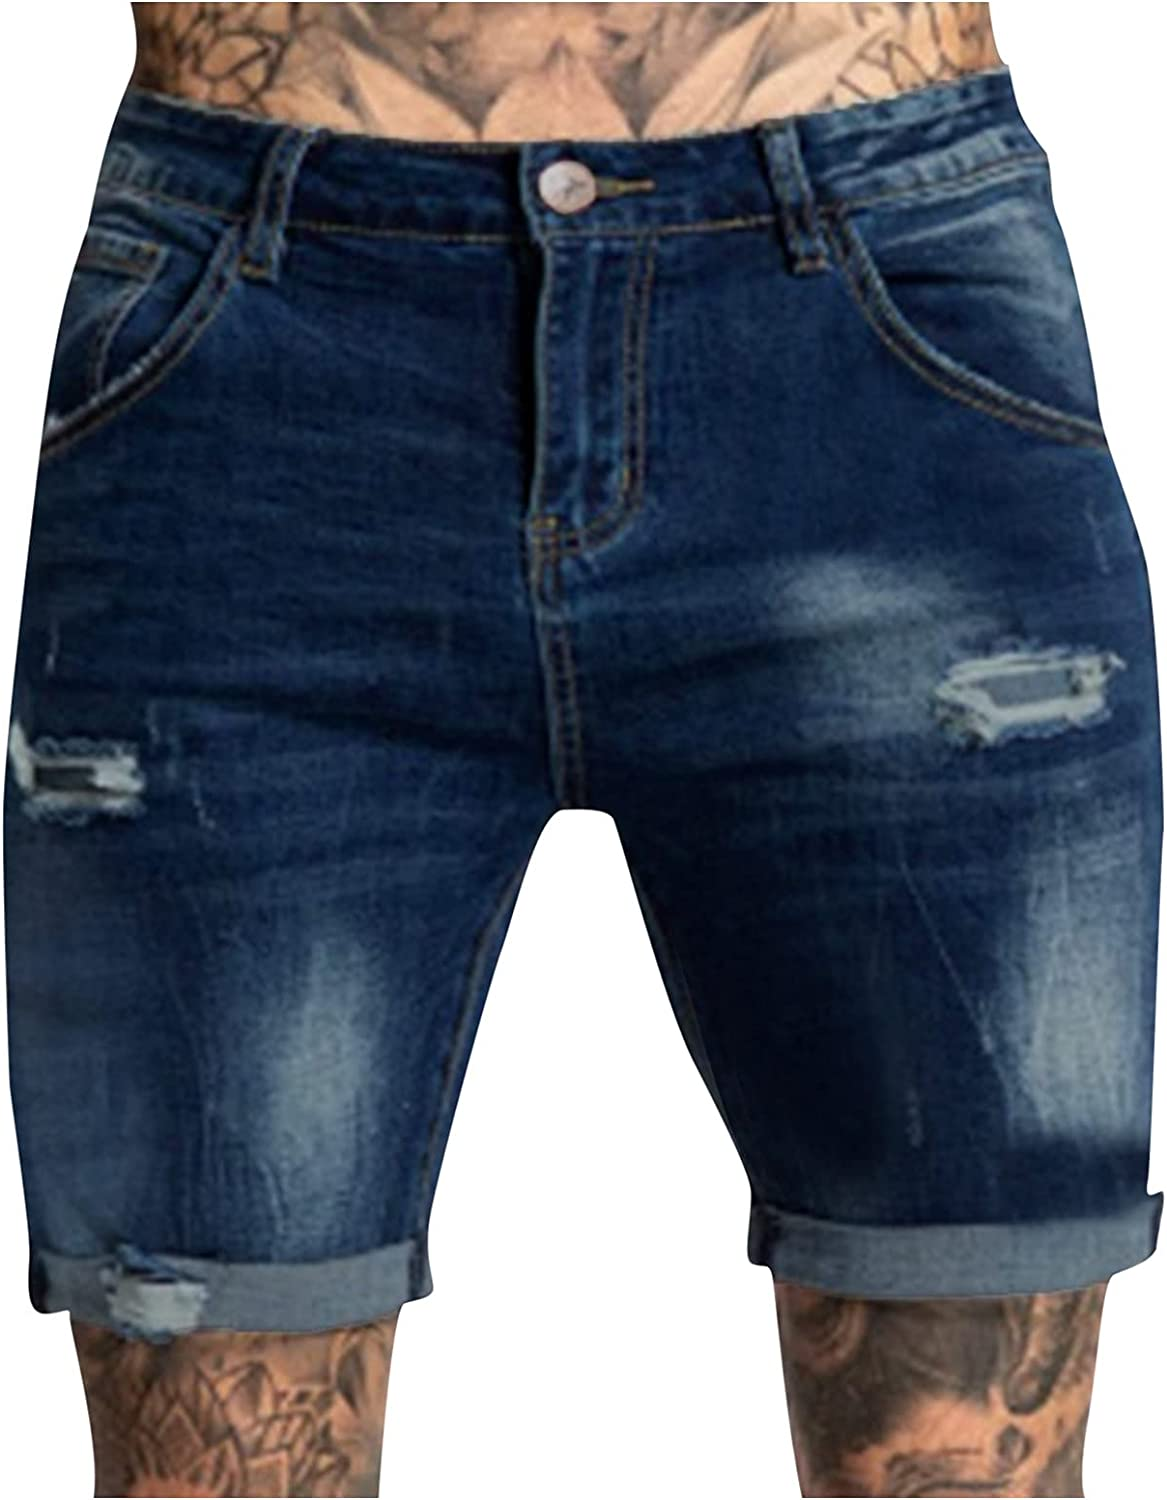 Misaky Men's Straight Leg Denim Jeans Casual Zipper Fly Hole Jeans Tight Shorts Trousers Pocket Wash Pant